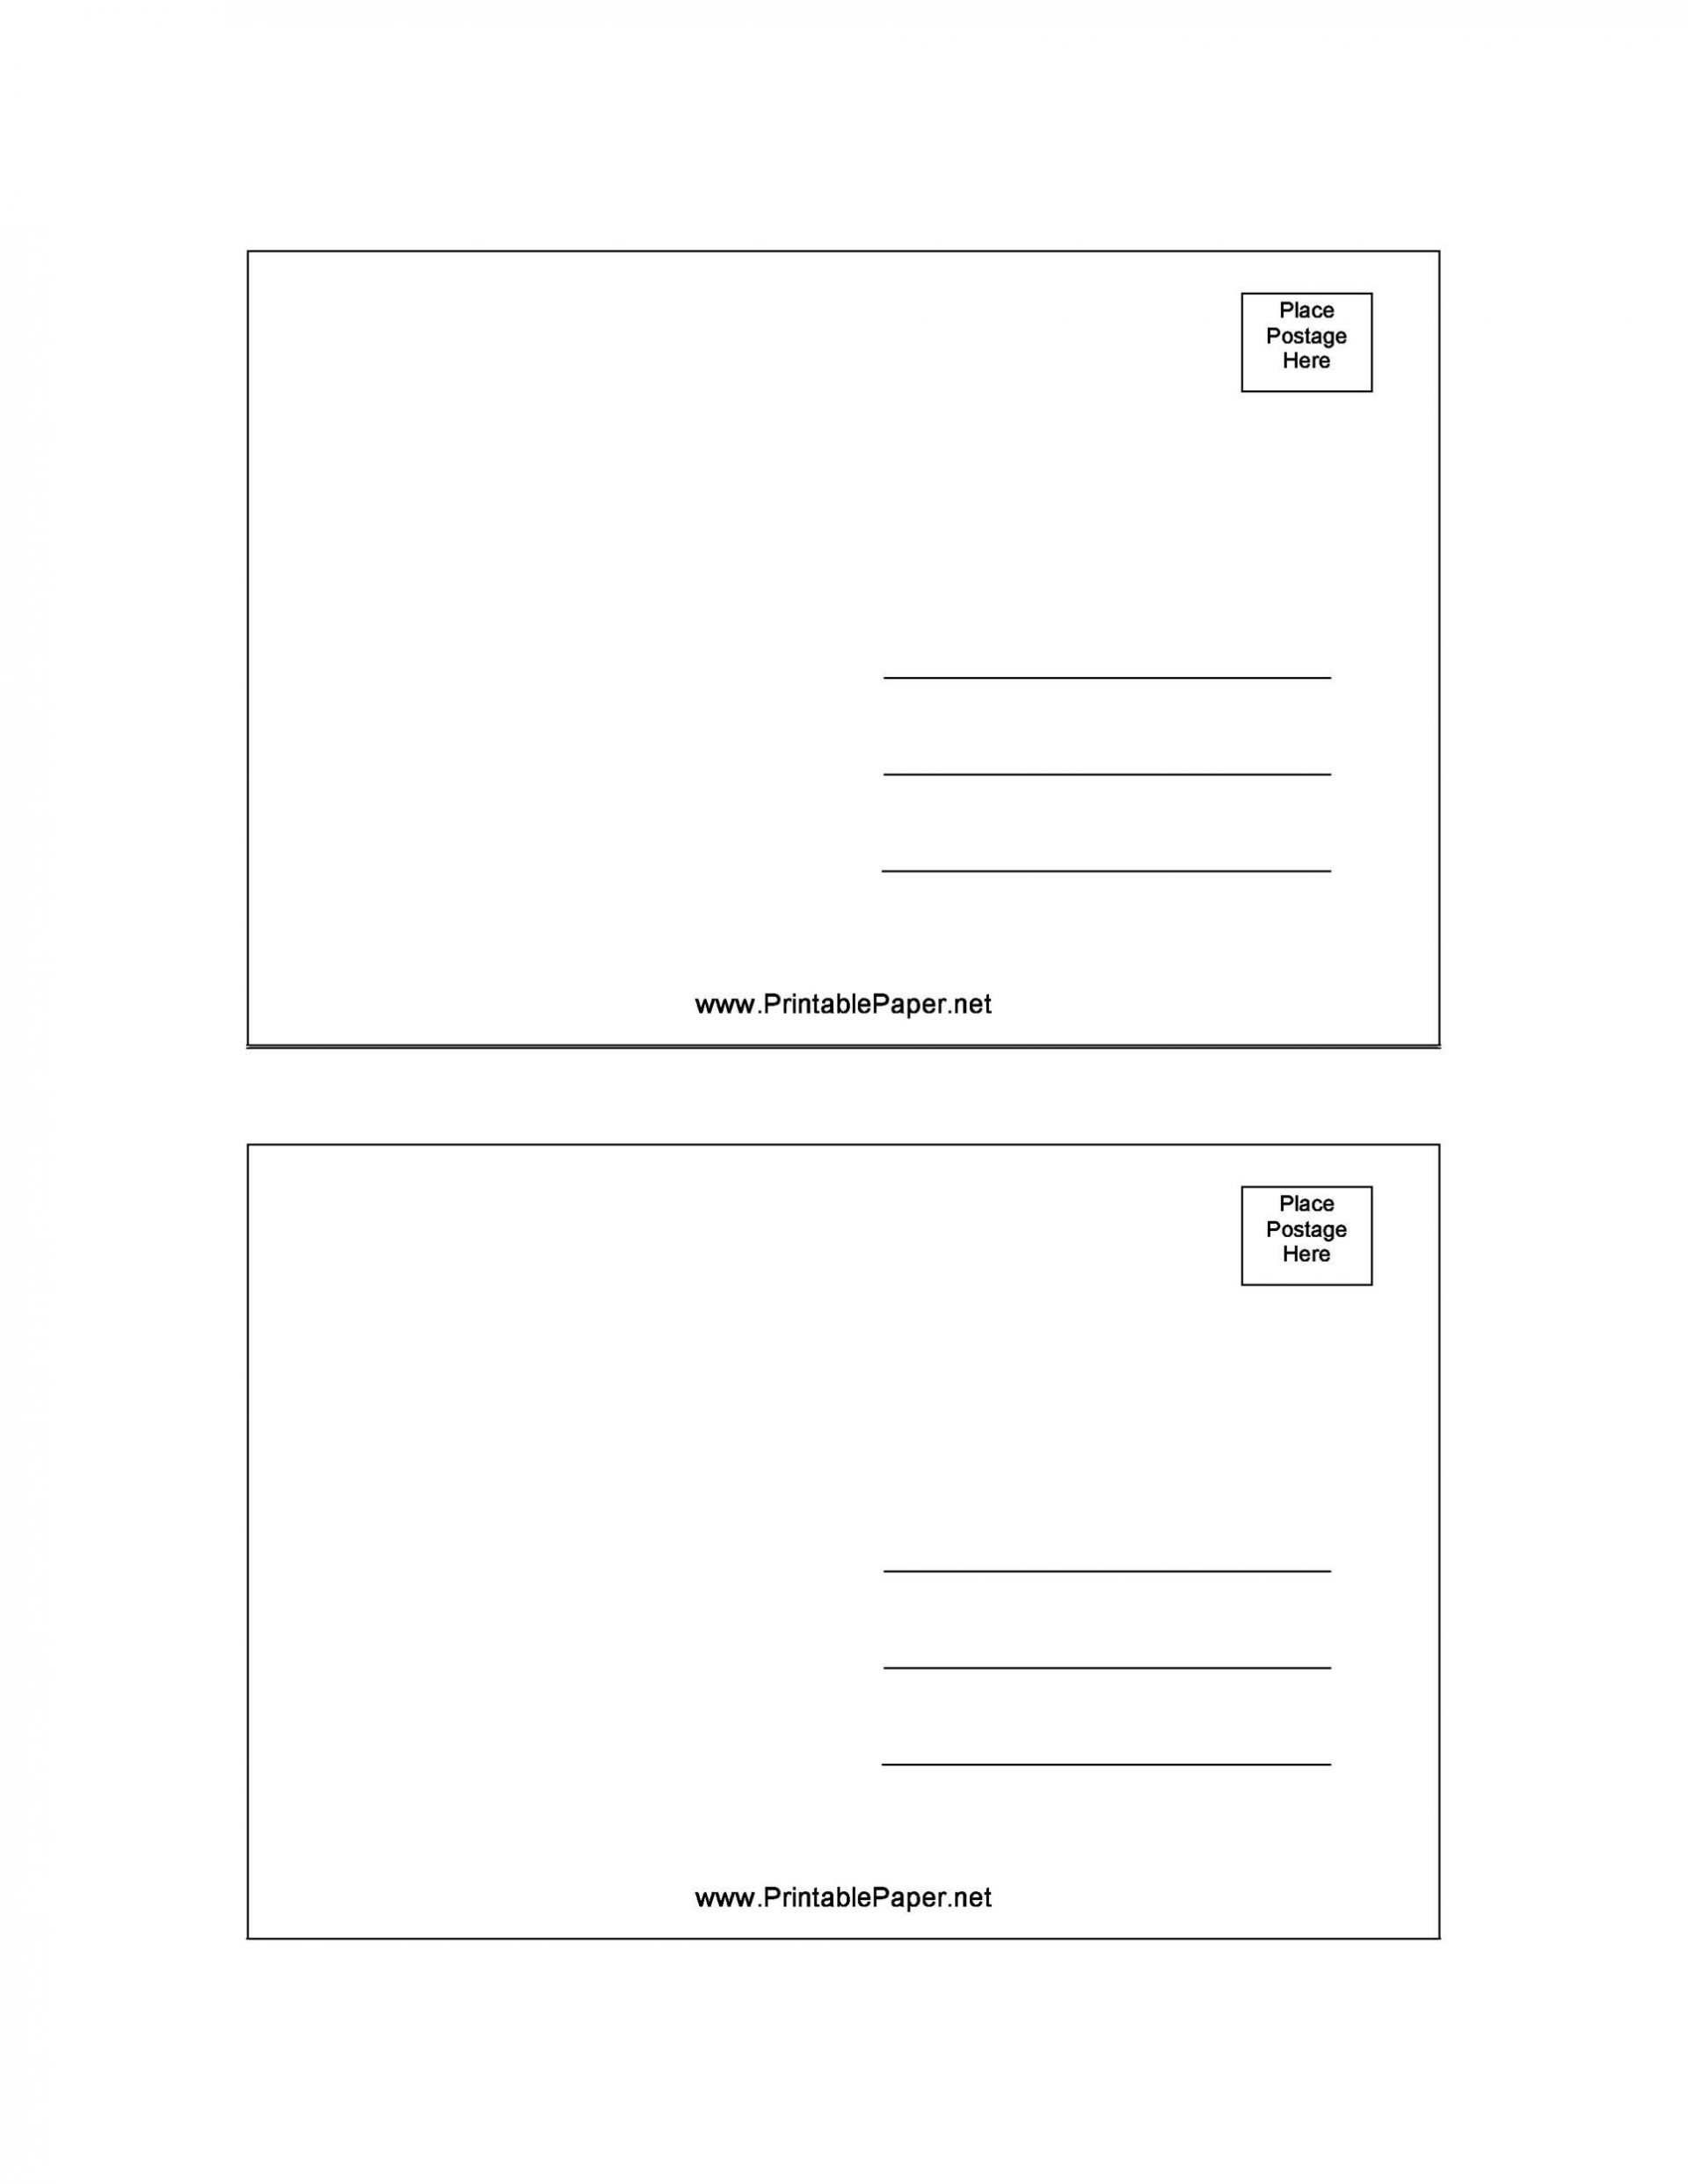 008 Amazing Free Postcard Template For Word Example  Printable Christma Place Card 4x61920